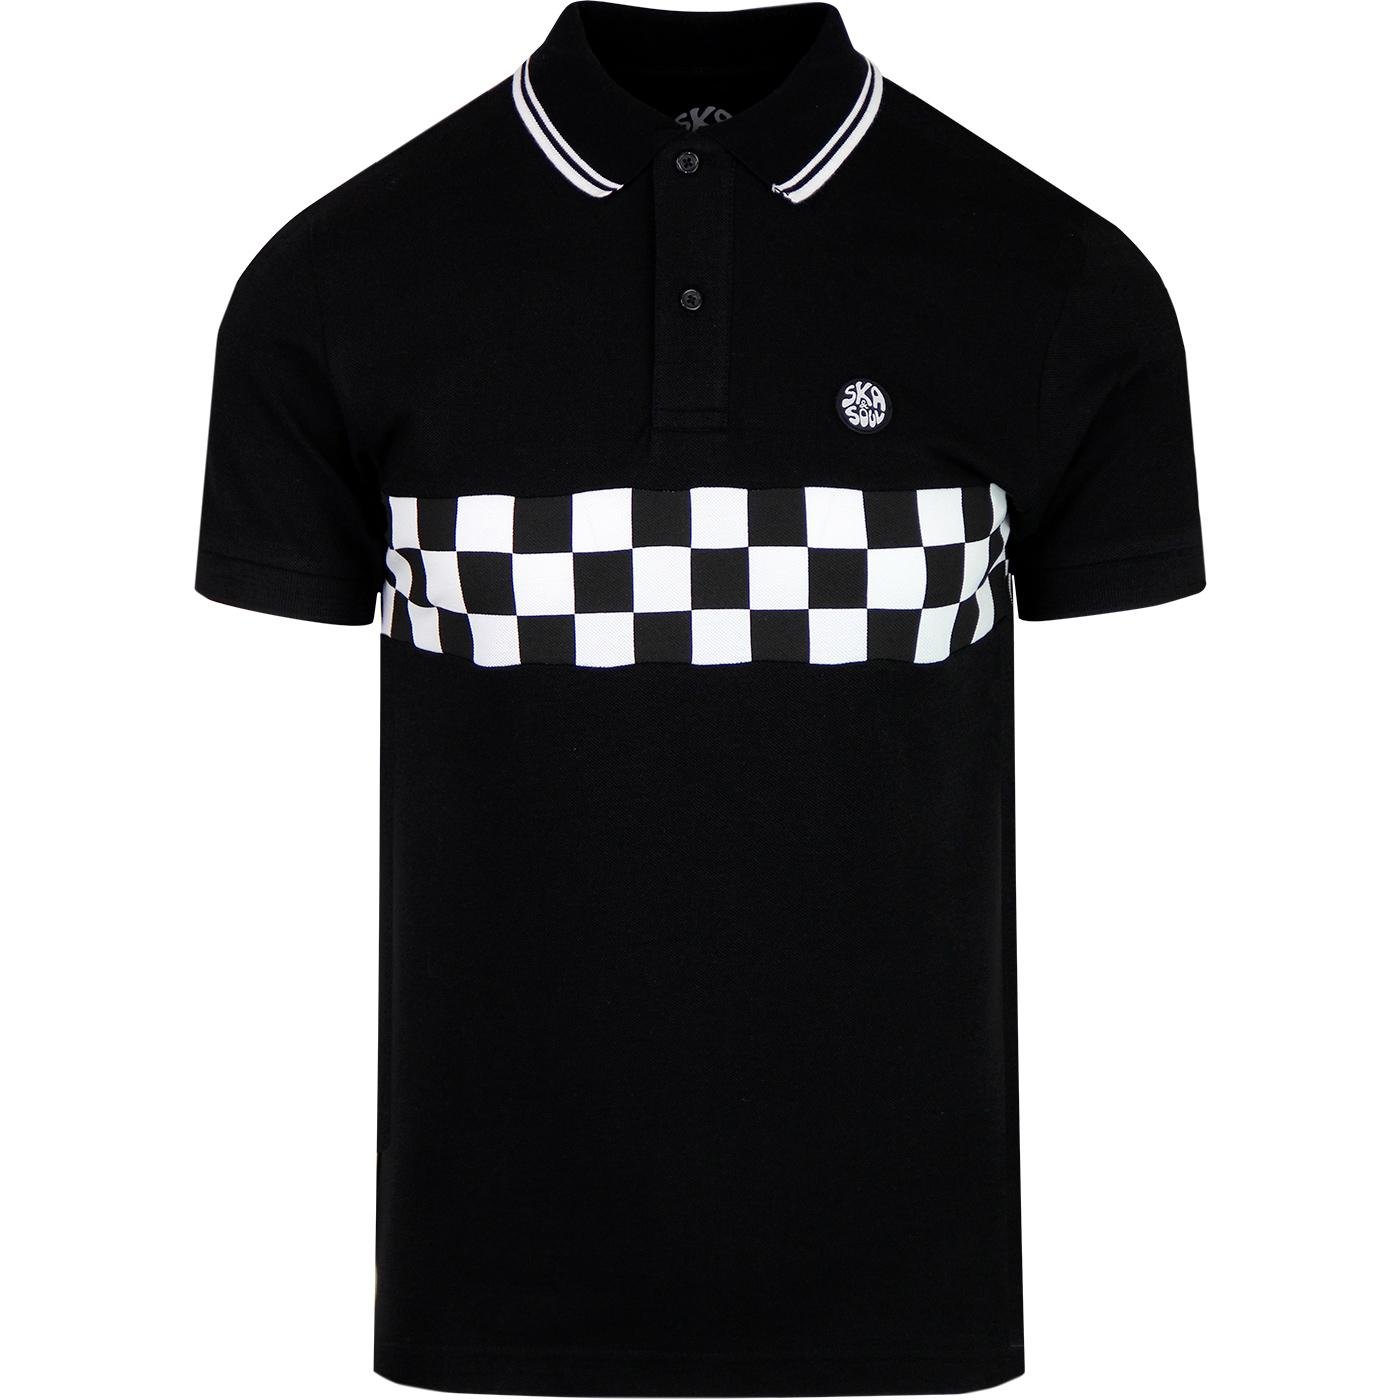 SKA & SOUL Mod Checkerboard Panel Tipped Polo